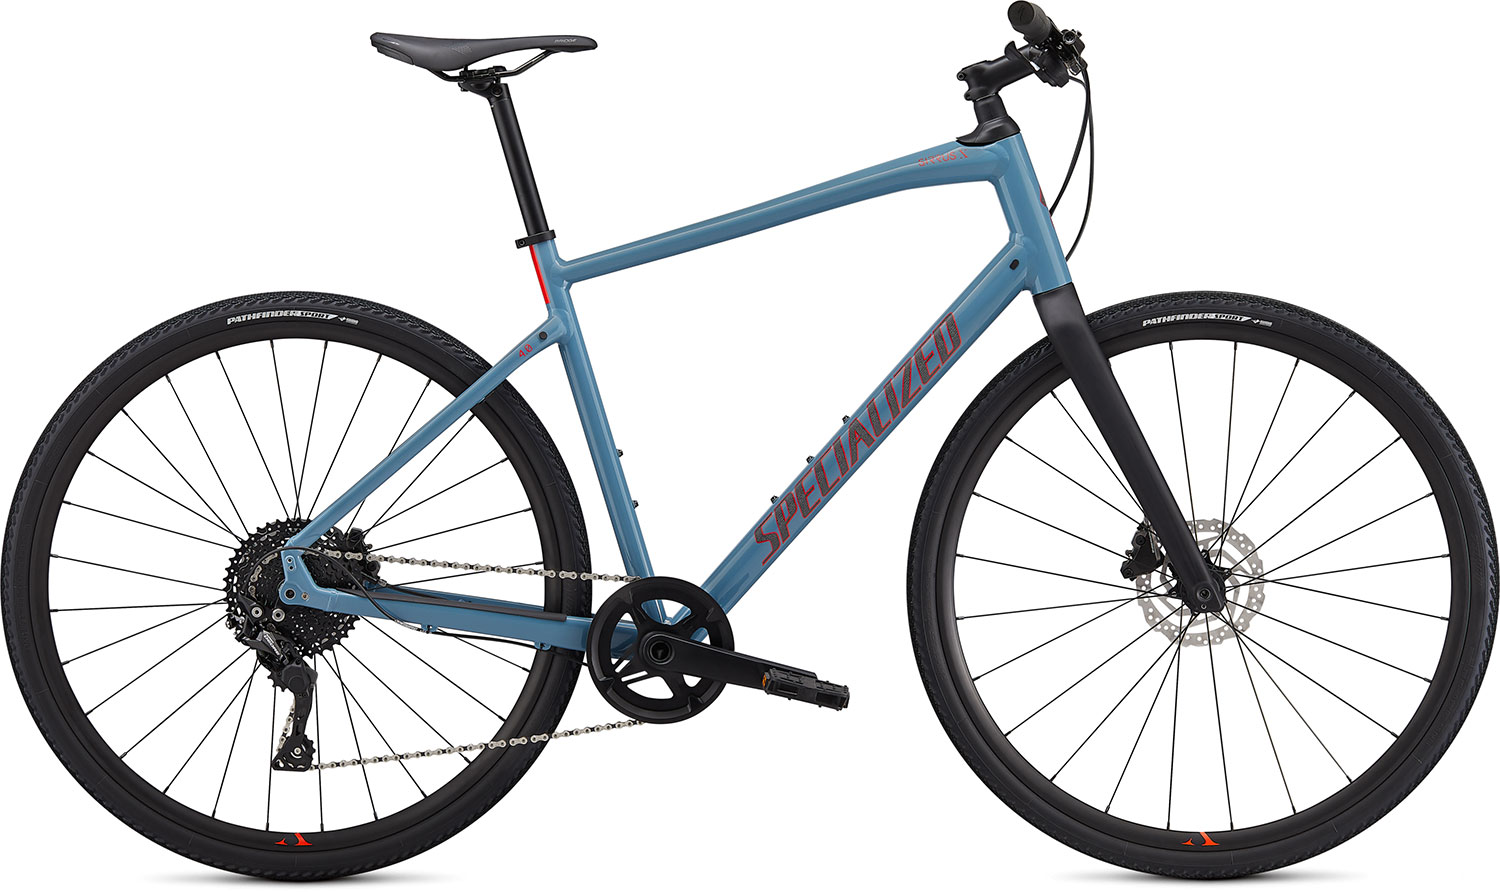 fitness kolo Specialized Sirrus X 4.0 2020 storm gray/red